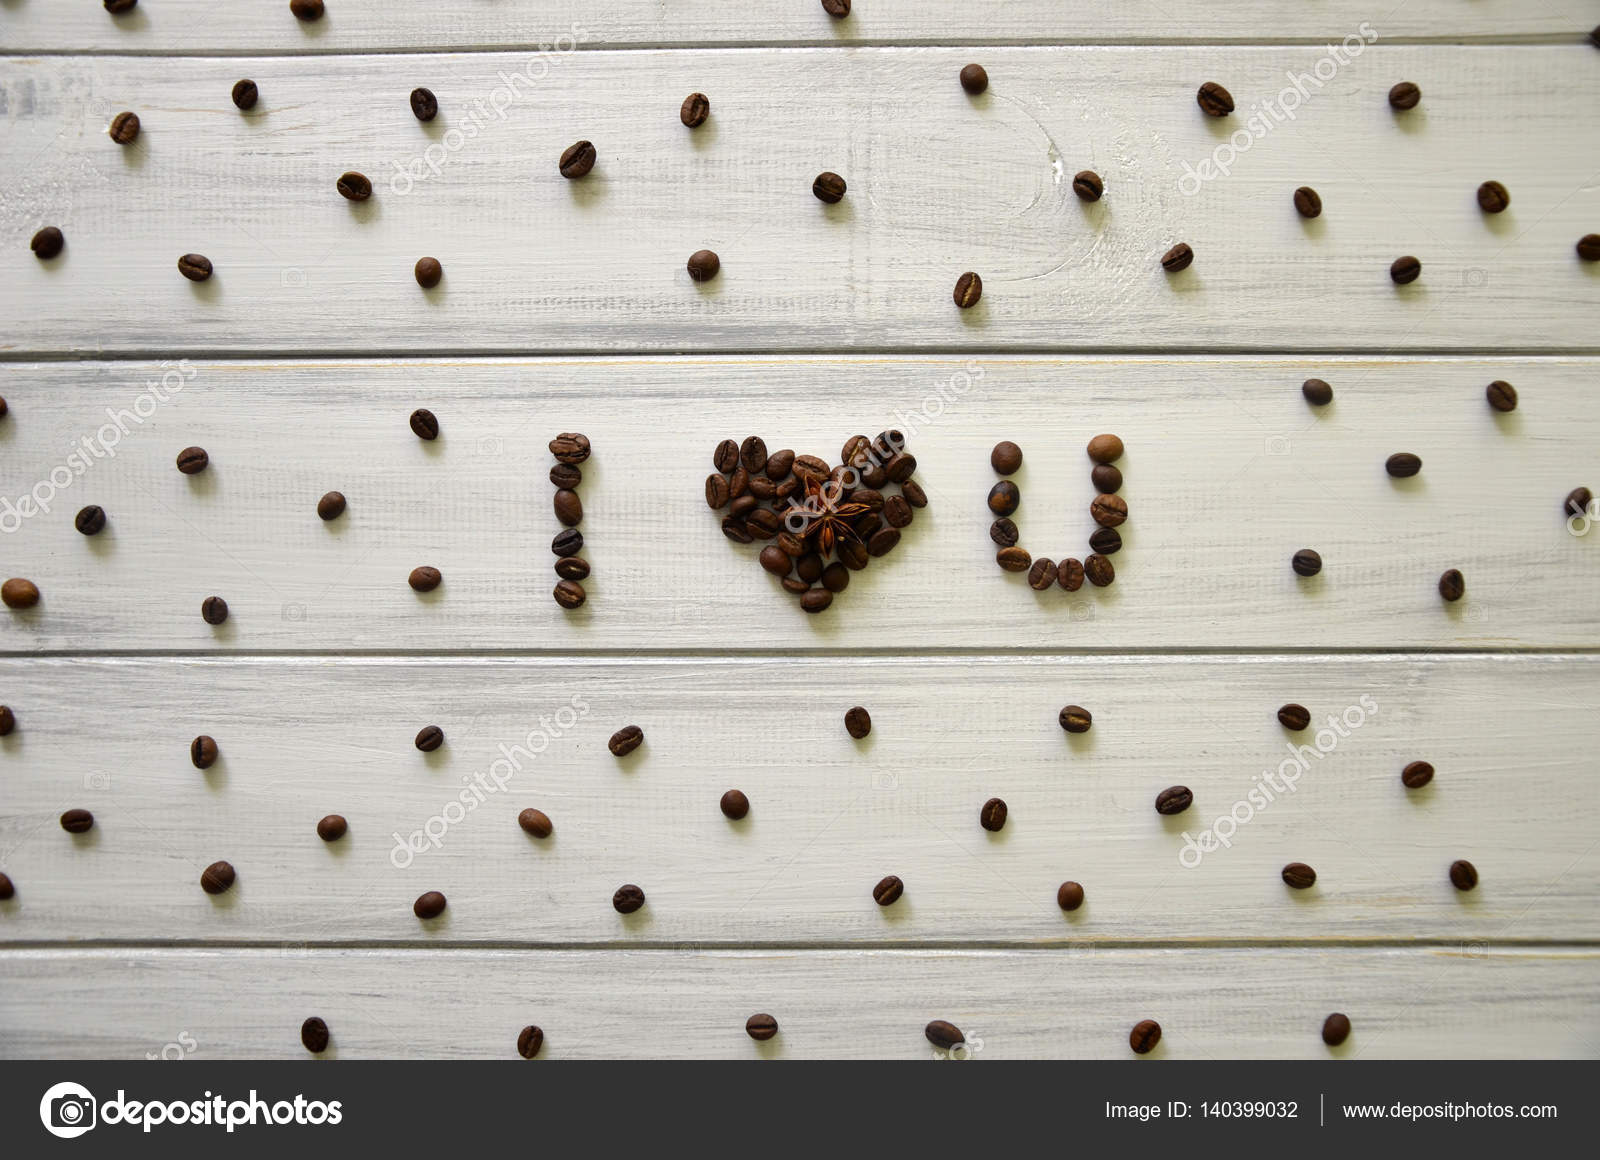 top view of i love you i heart u words made from coffee beans on